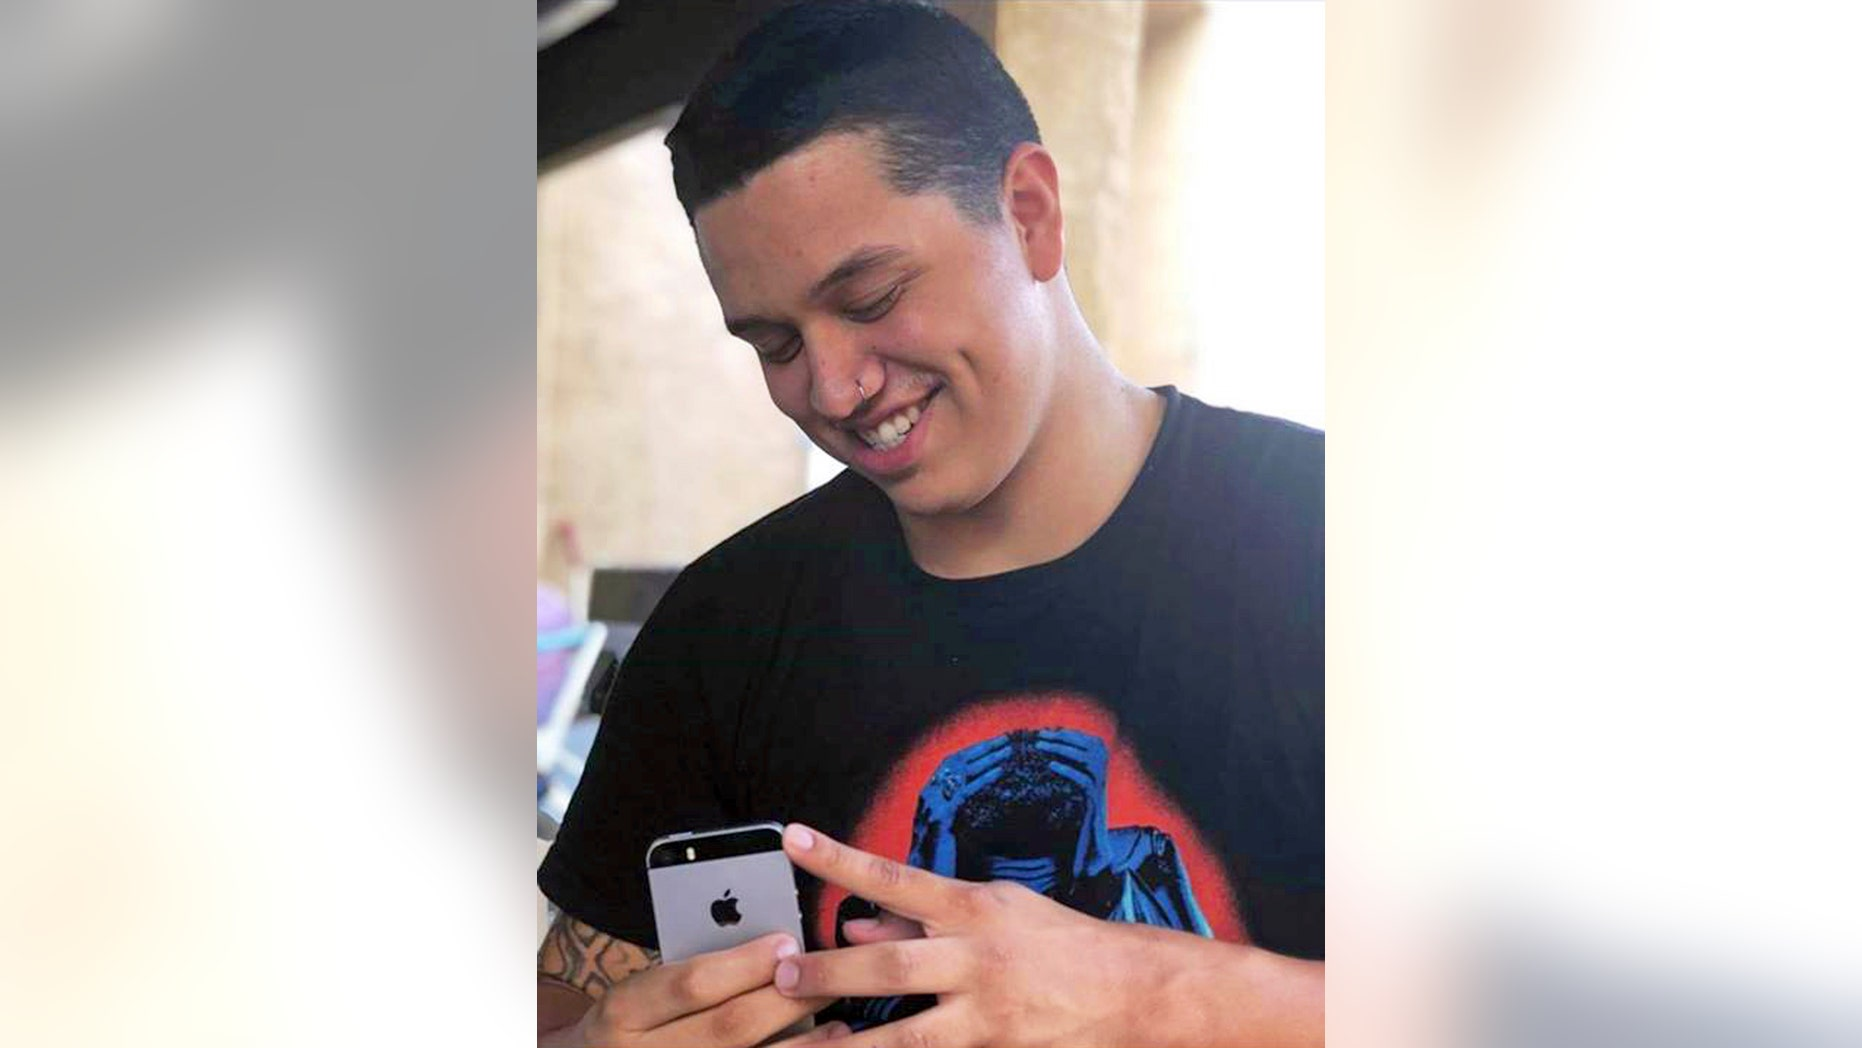 This undated photo by Seanna Leilani shows her brother, Aaron Francisco Chavez. Chavez, 19, died after he swallowed sky blue fentanyl pills designed to look like oxycodone.